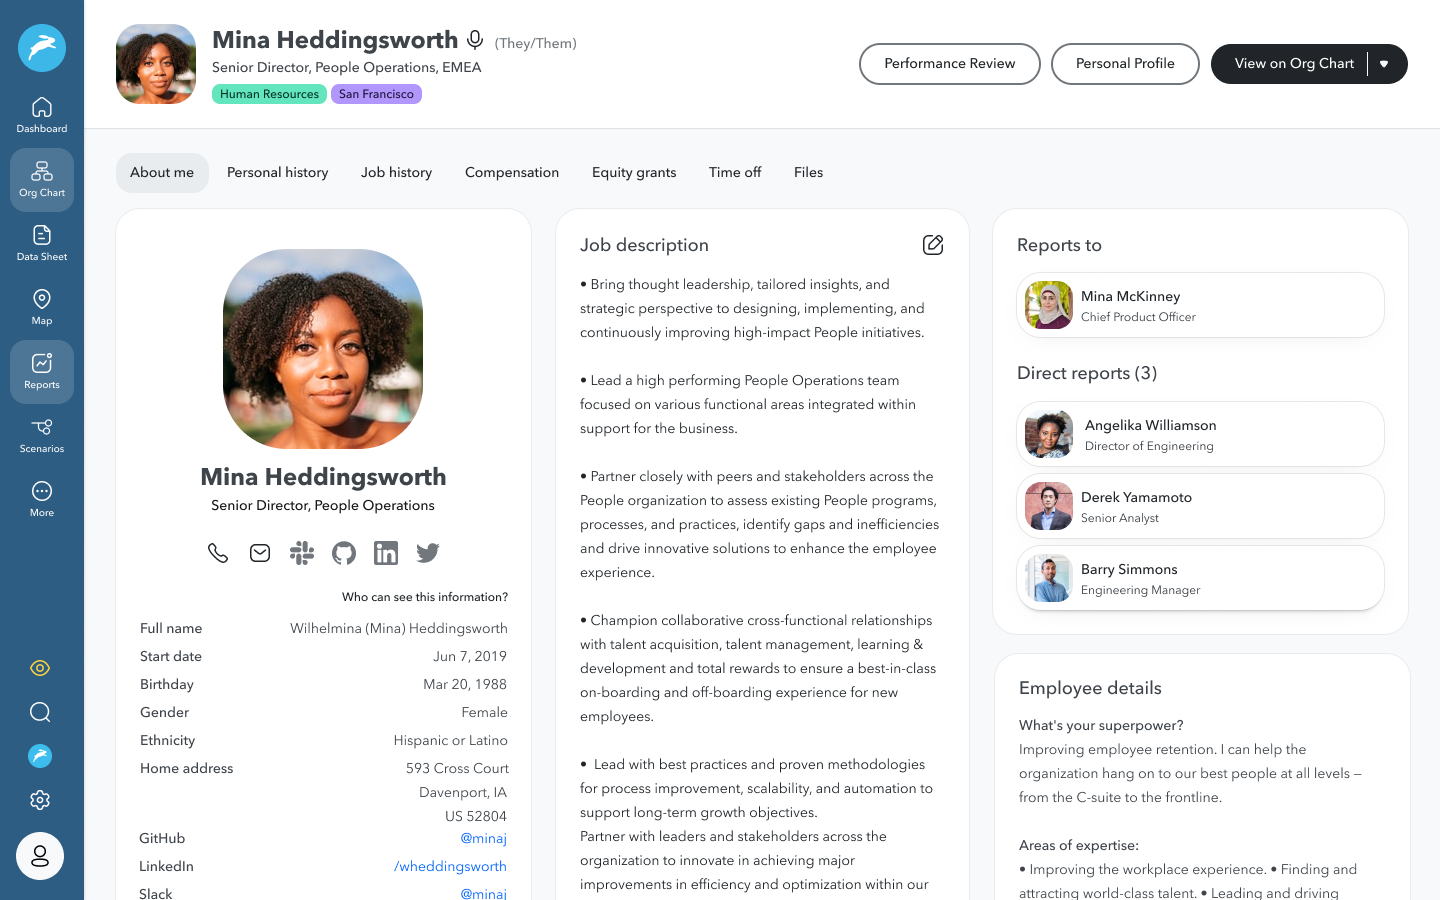 Rich employee profiles: Drive connections across your employee base while humanizing your people data